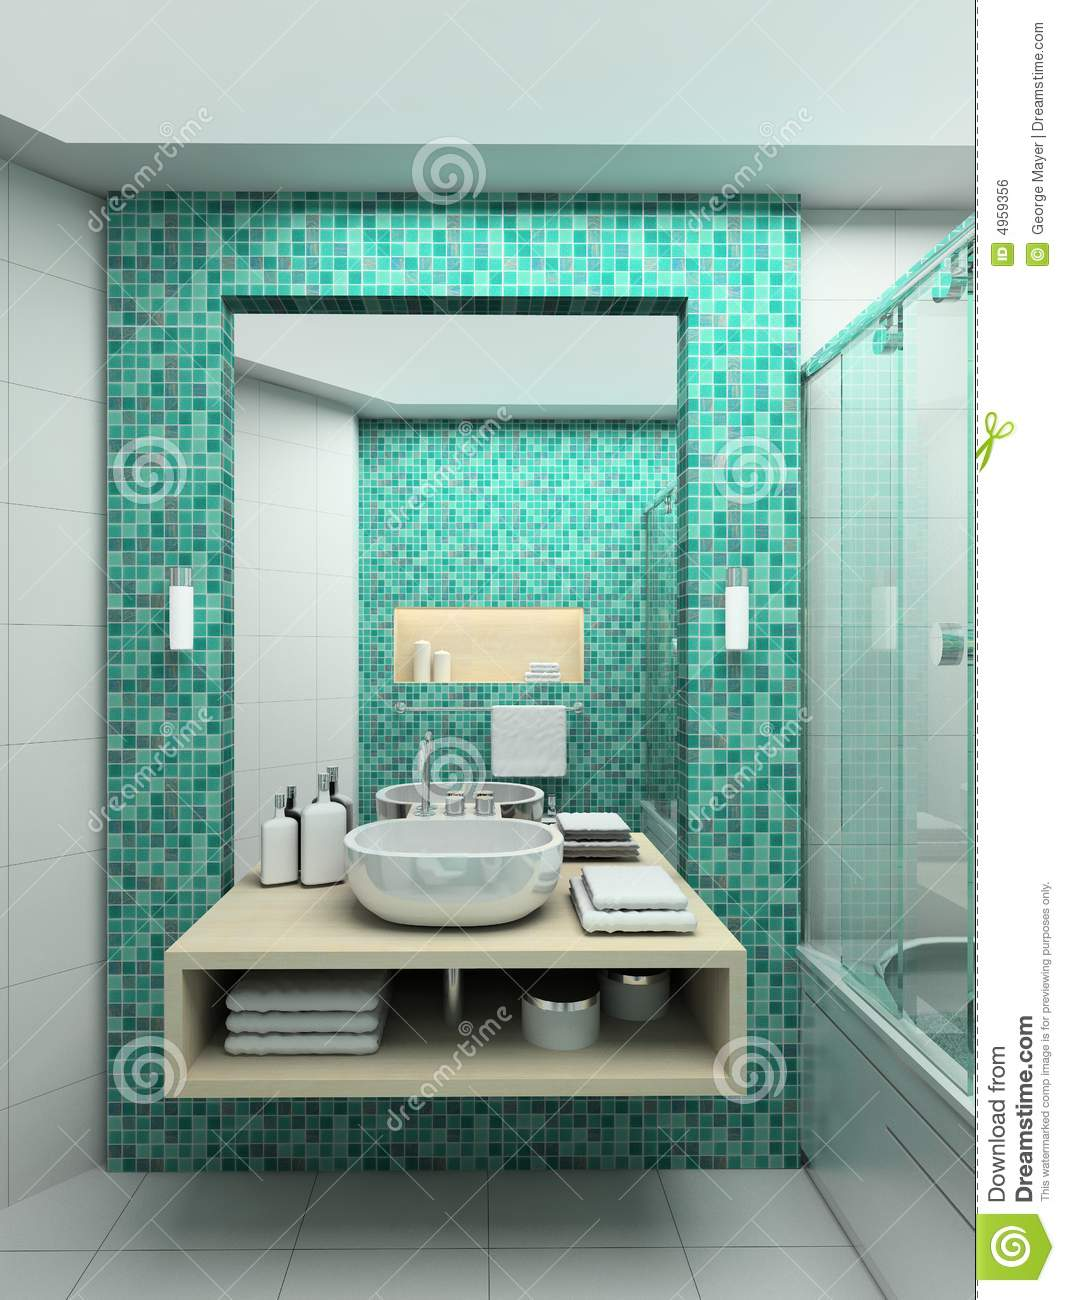 3d Render Modern Interior Of Bathroom Royalty Free Stock Image Image 4959356